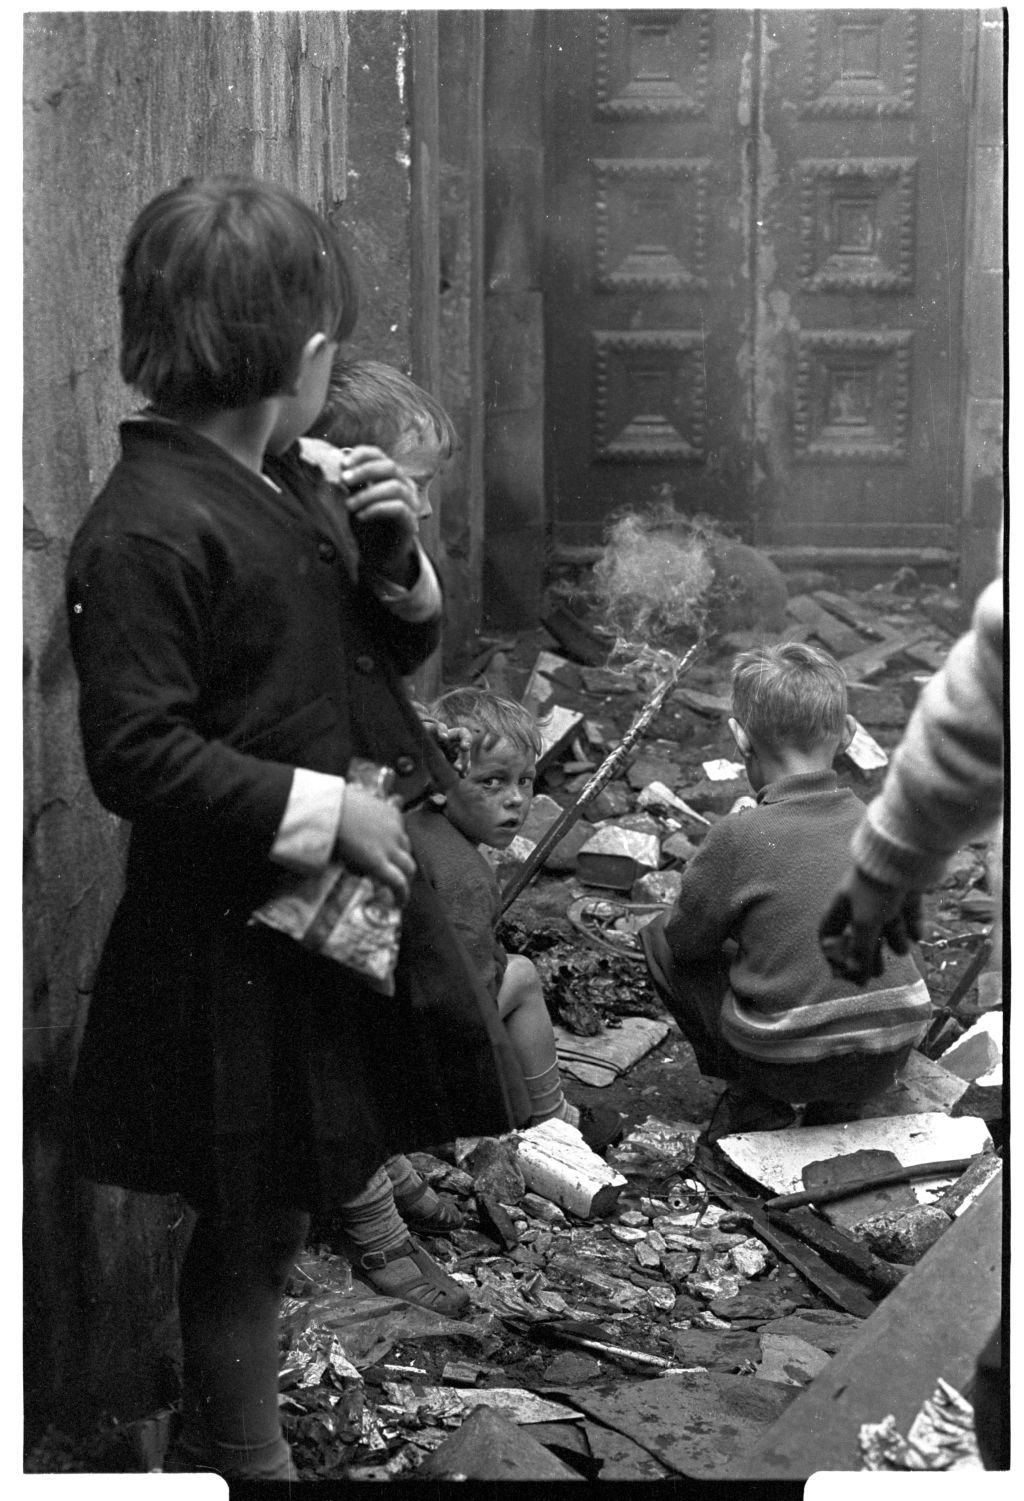 [Children Playing With Fire in Derelict Building]